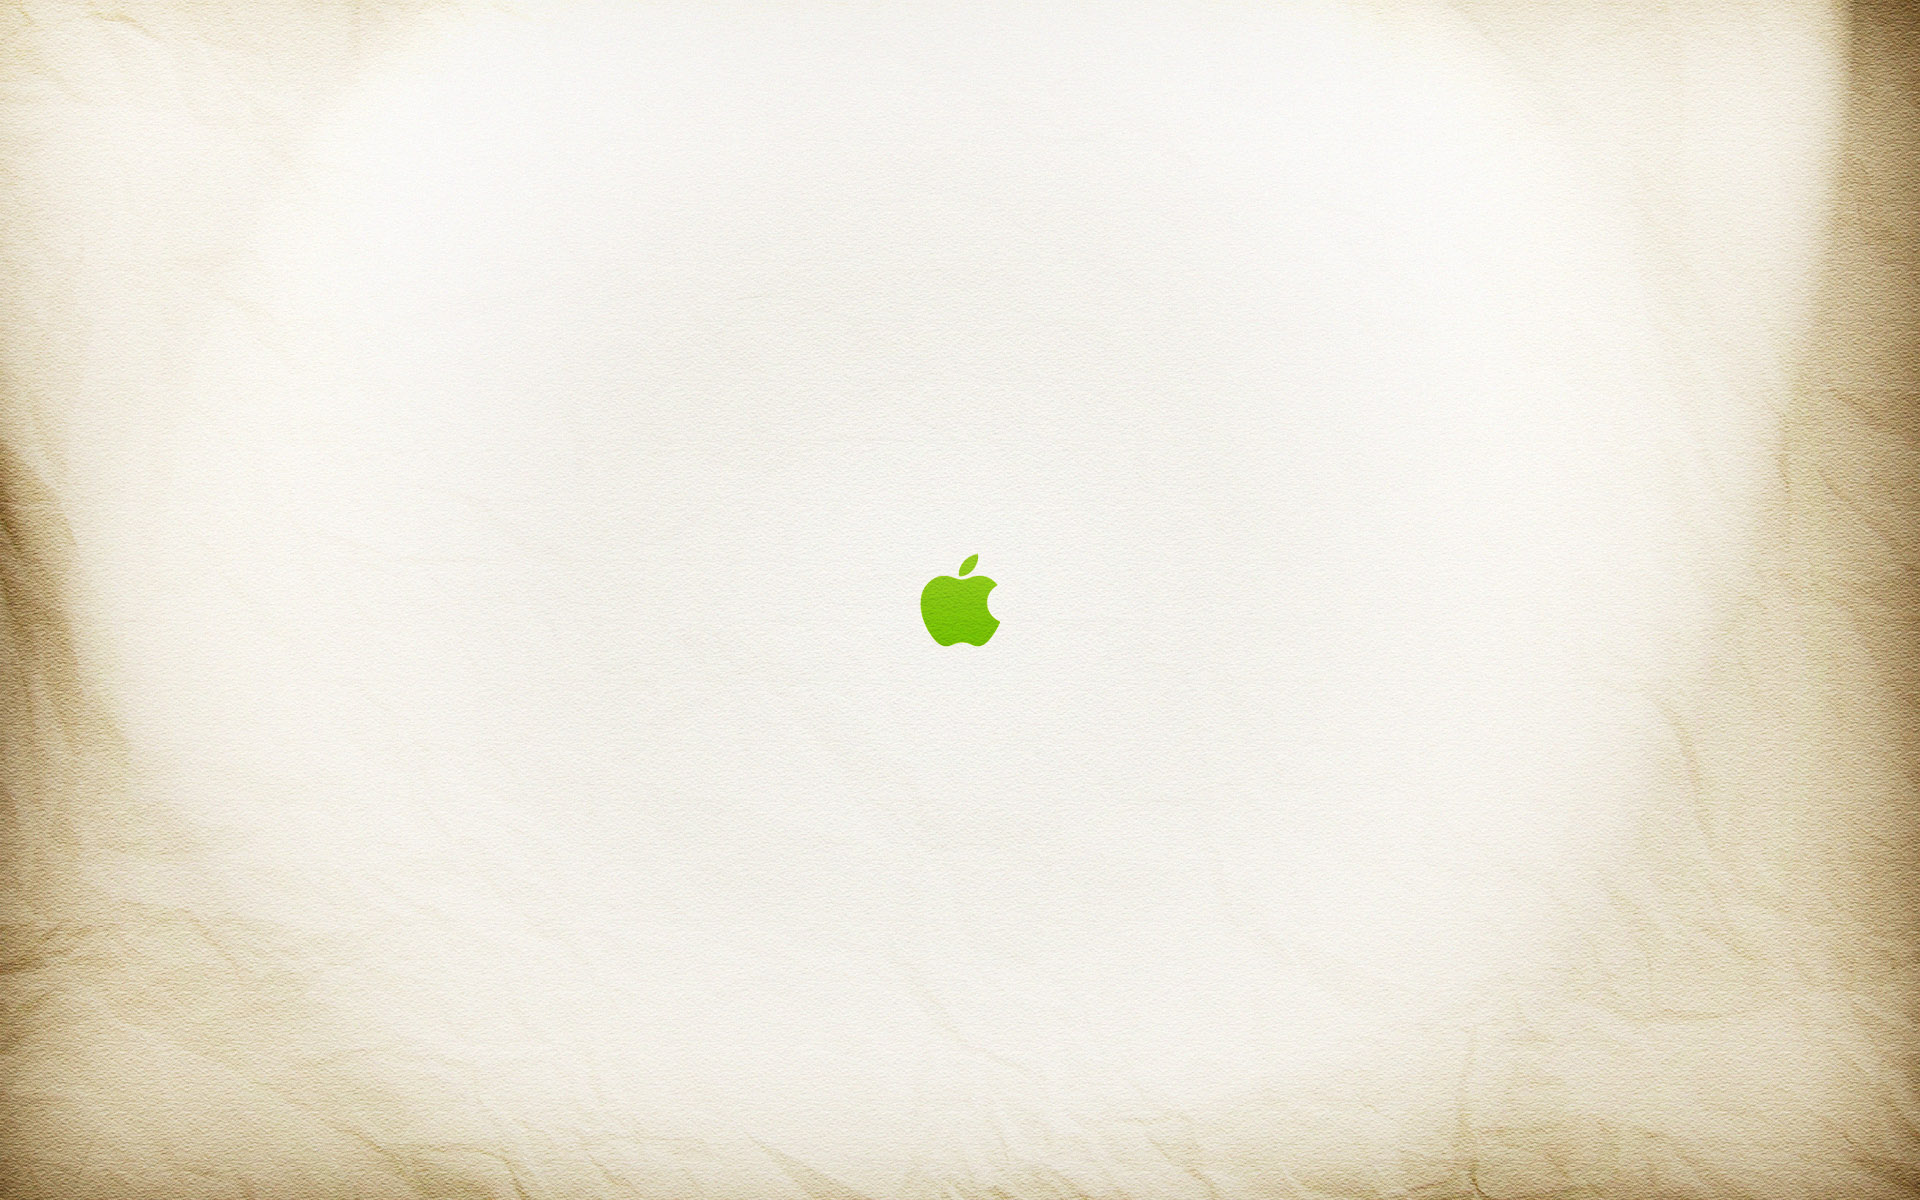 HD Apple wallpaper 19109